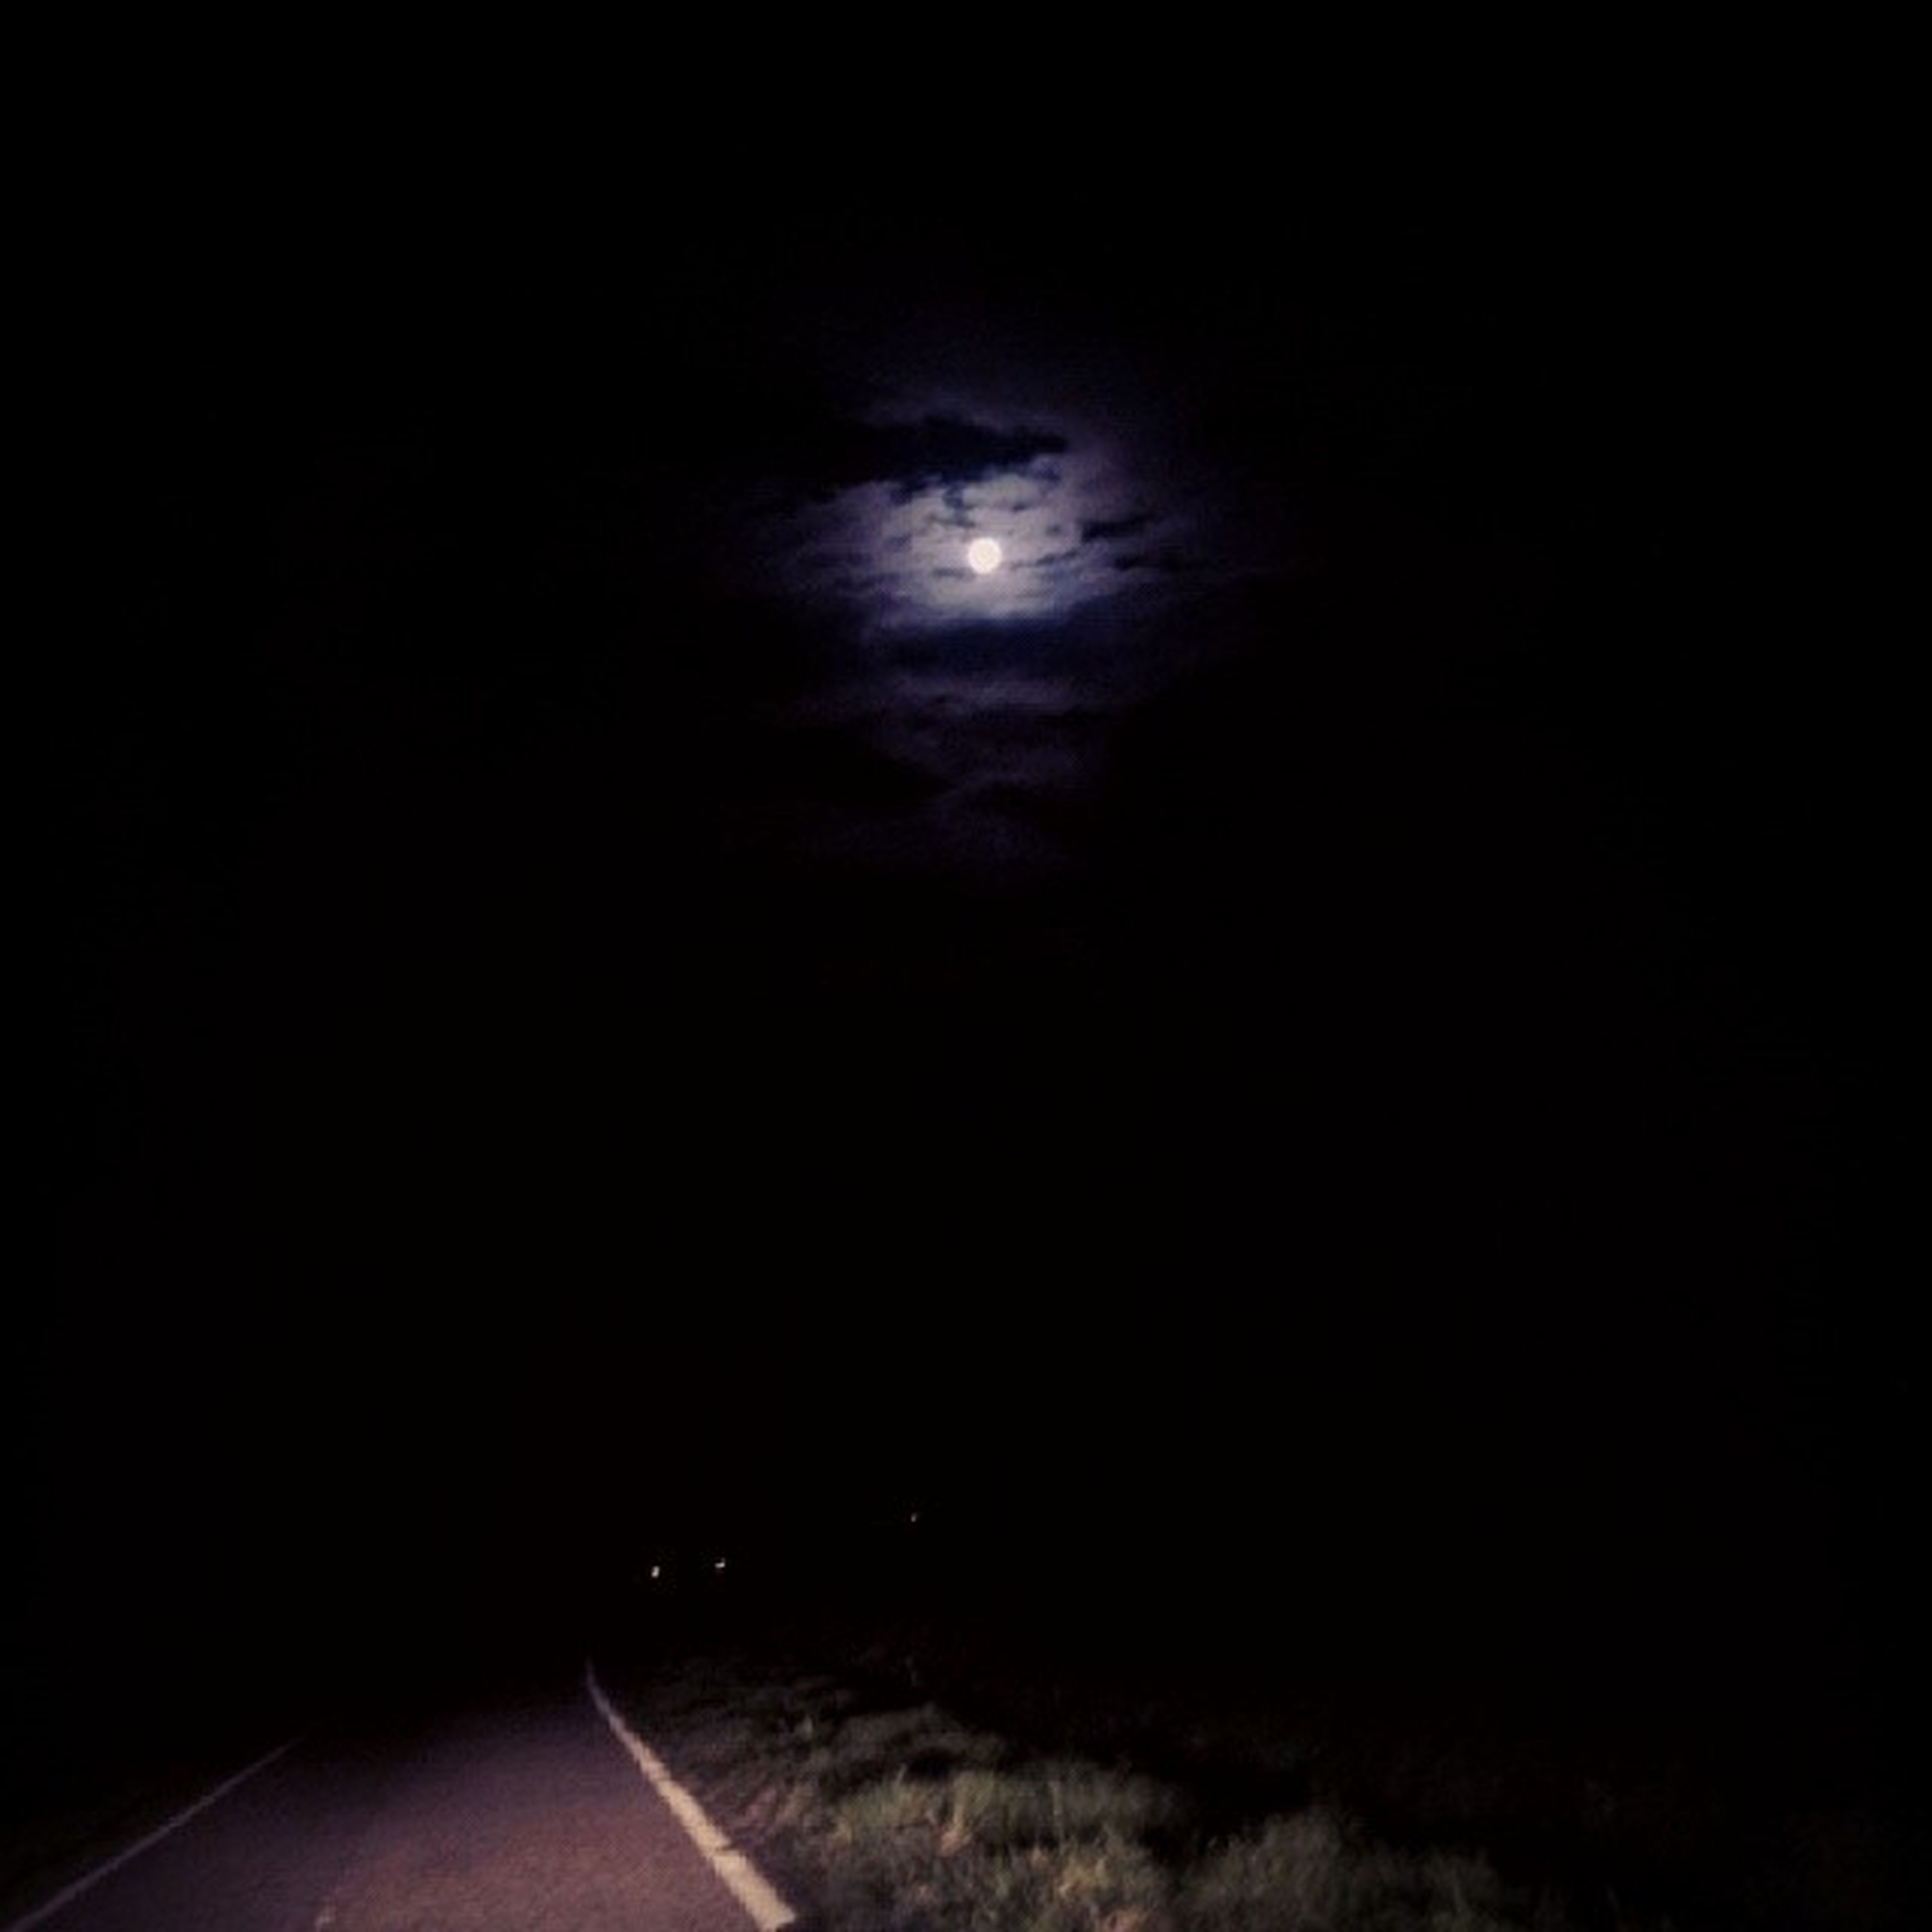 night, dark, sky, the way forward, copy space, road, transportation, tranquility, illuminated, diminishing perspective, nature, silhouette, no people, vanishing point, tranquil scene, scenics, road marking, outdoors, dusk, beauty in nature